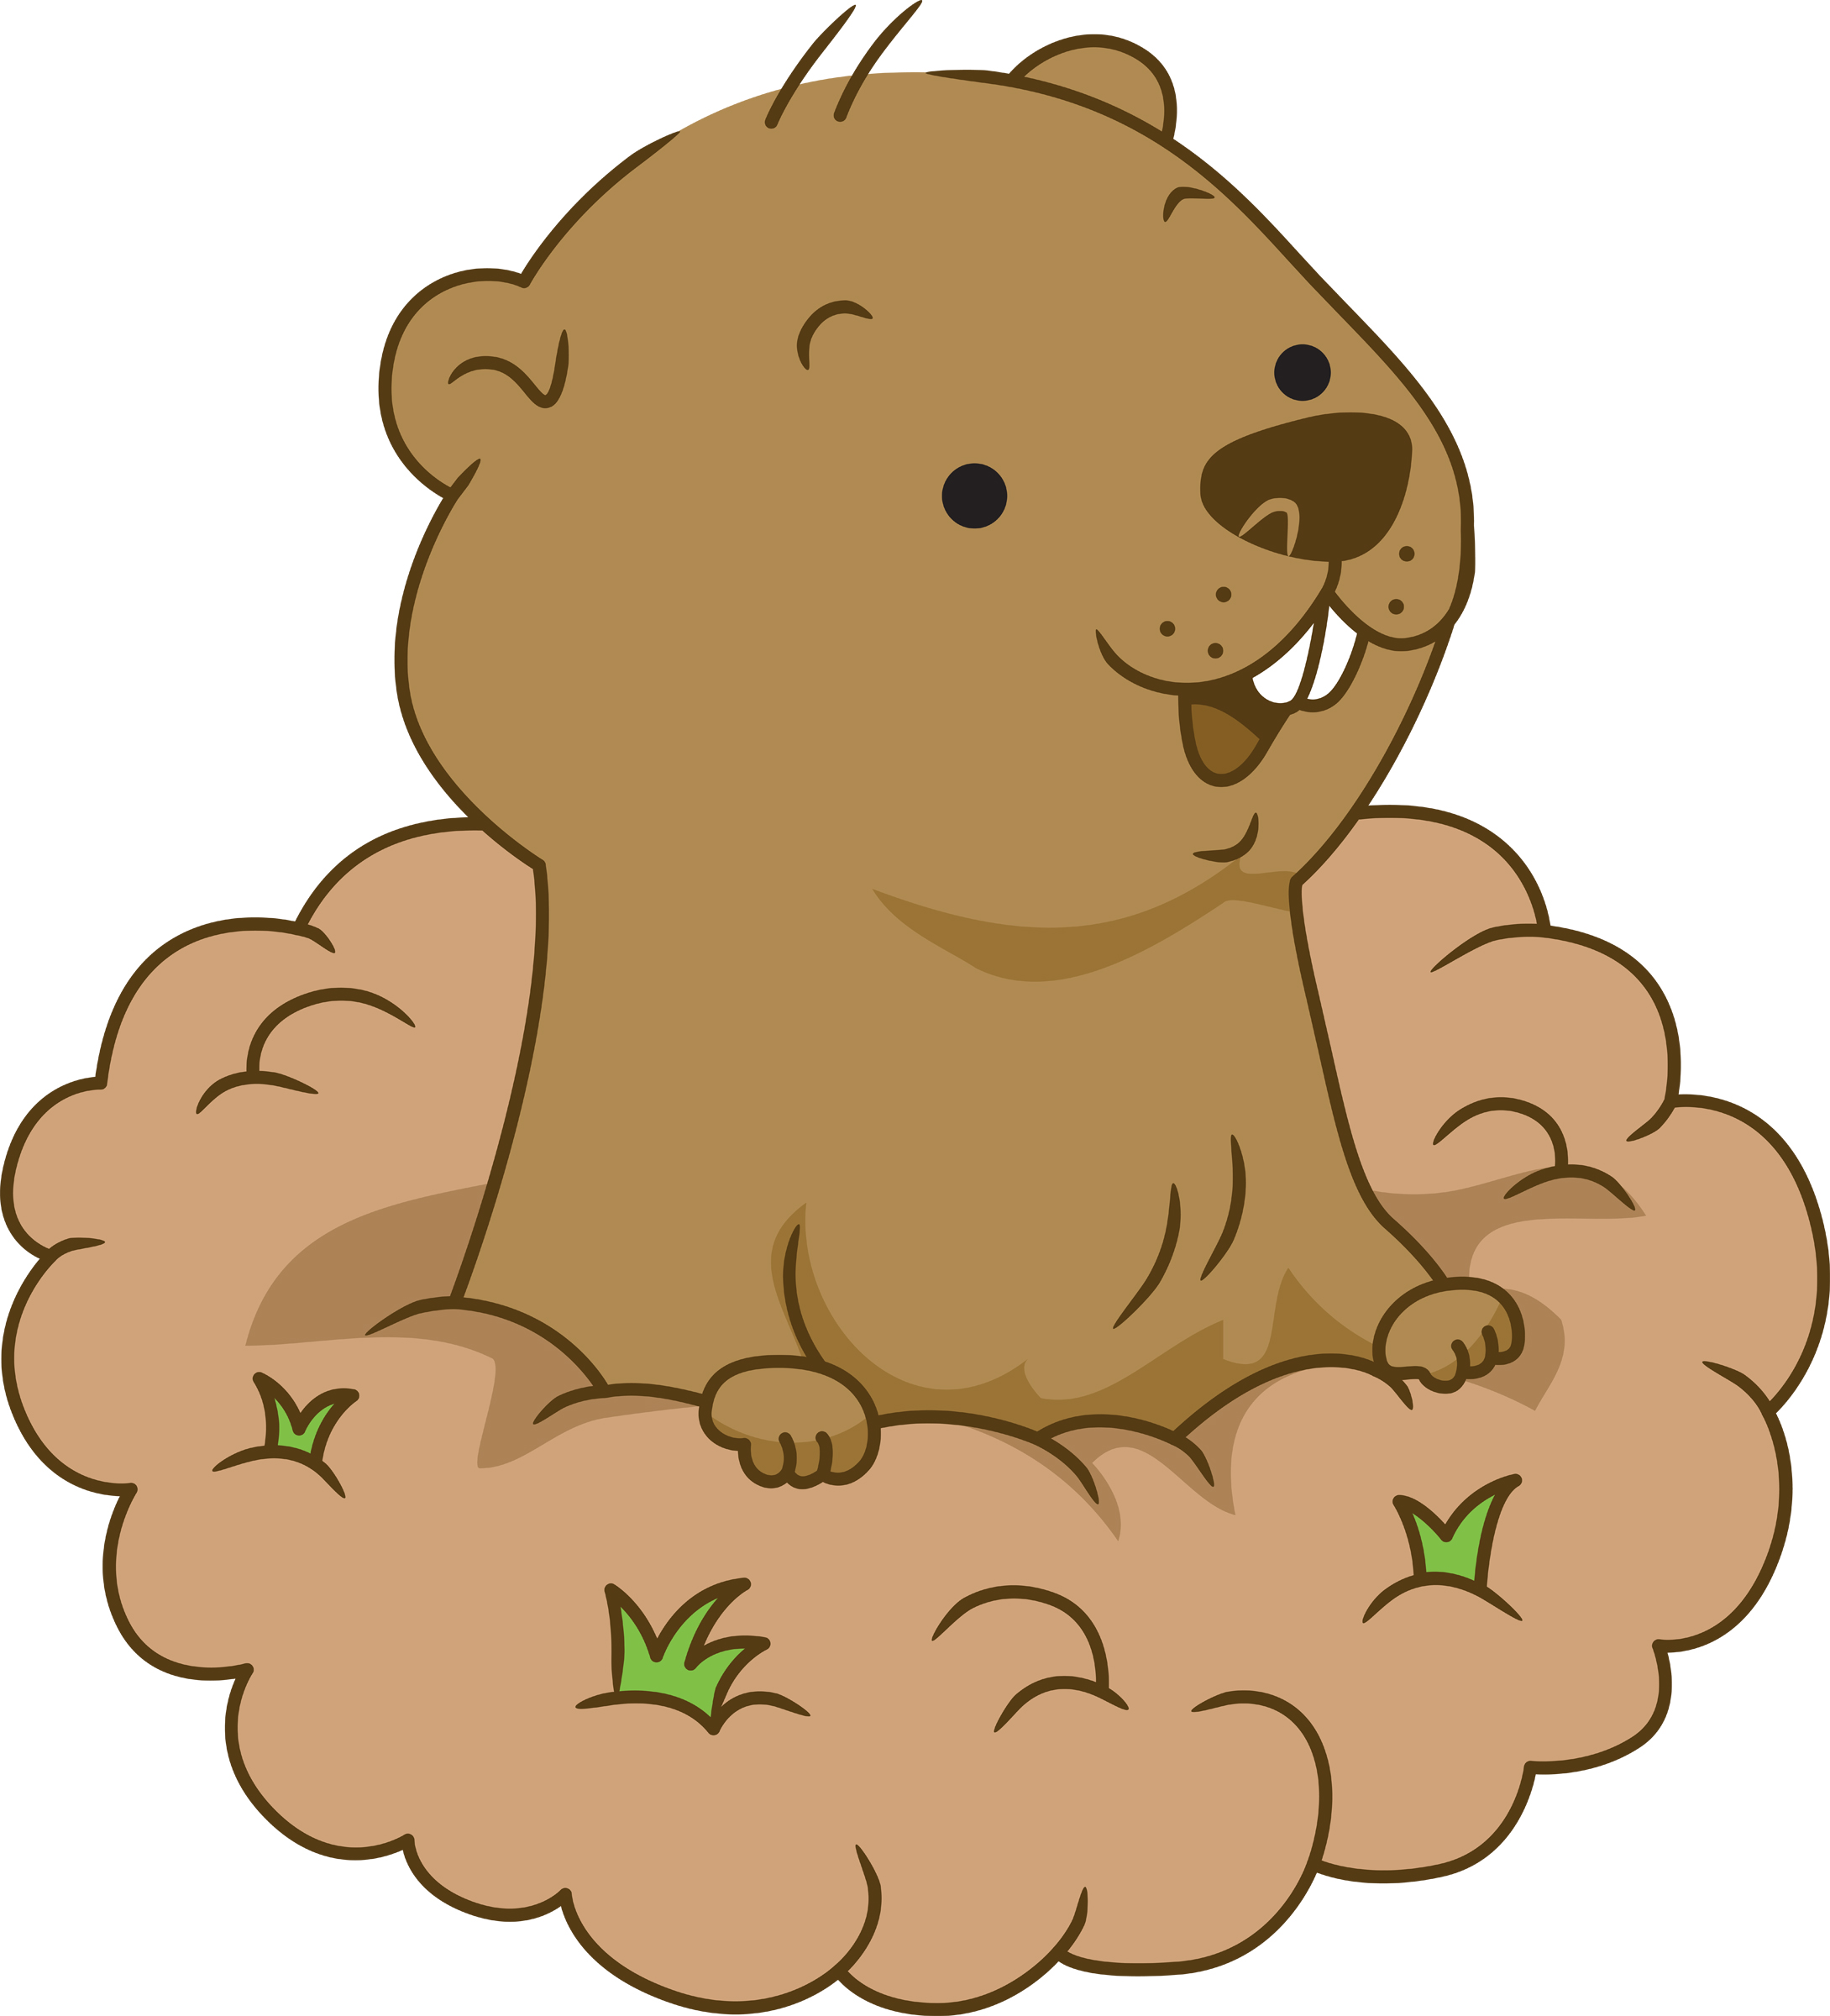 Groundhog clipart Com 5 5 clipart day